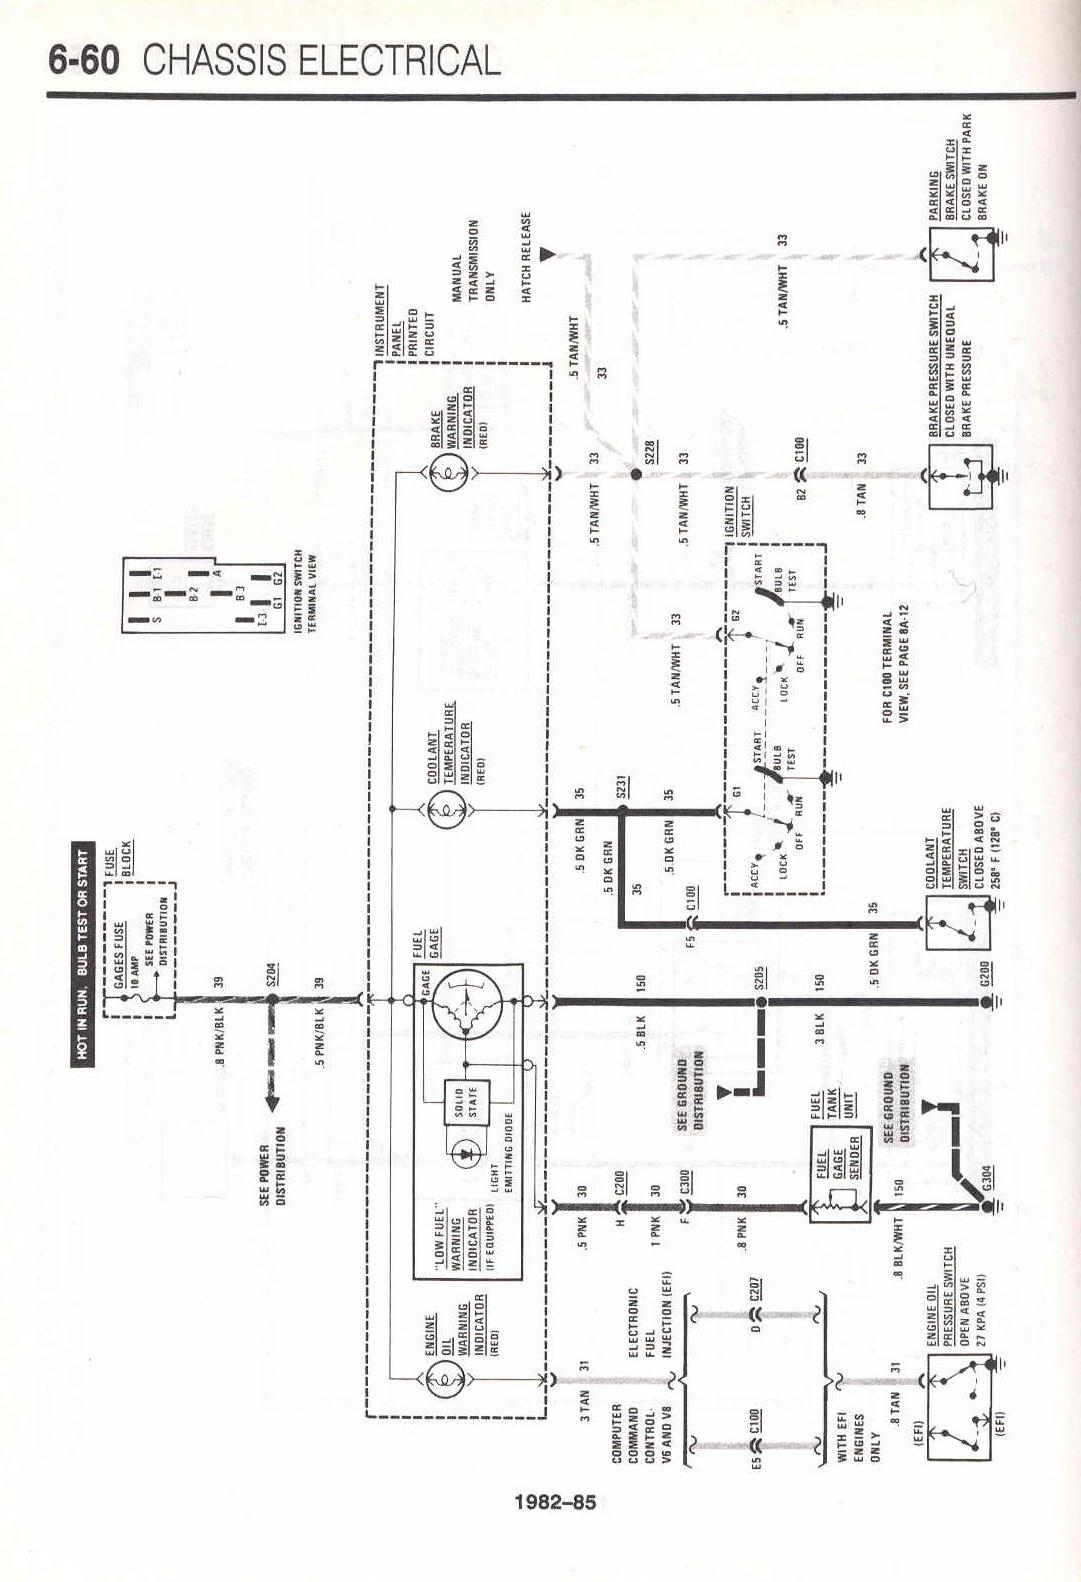 schematic9 Wiring Diagram For Camaro Z on 1984 camaro sport coupe wiring diagram, 1979 z28 wiring diagram, 1984 corvette wiring diagram, 1984 suburban wiring diagram, 1984 camaro z28 belts diagram, 1984 caprice wiring diagram, 1967 camaro ss wiring diagram, 1984 s10 wiring diagram, 1981 camaro wiring diagram, 1984 monte carlo ss wiring diagram, 1984 mustang wiring diagram, 1984 chevrolet wiring diagram,